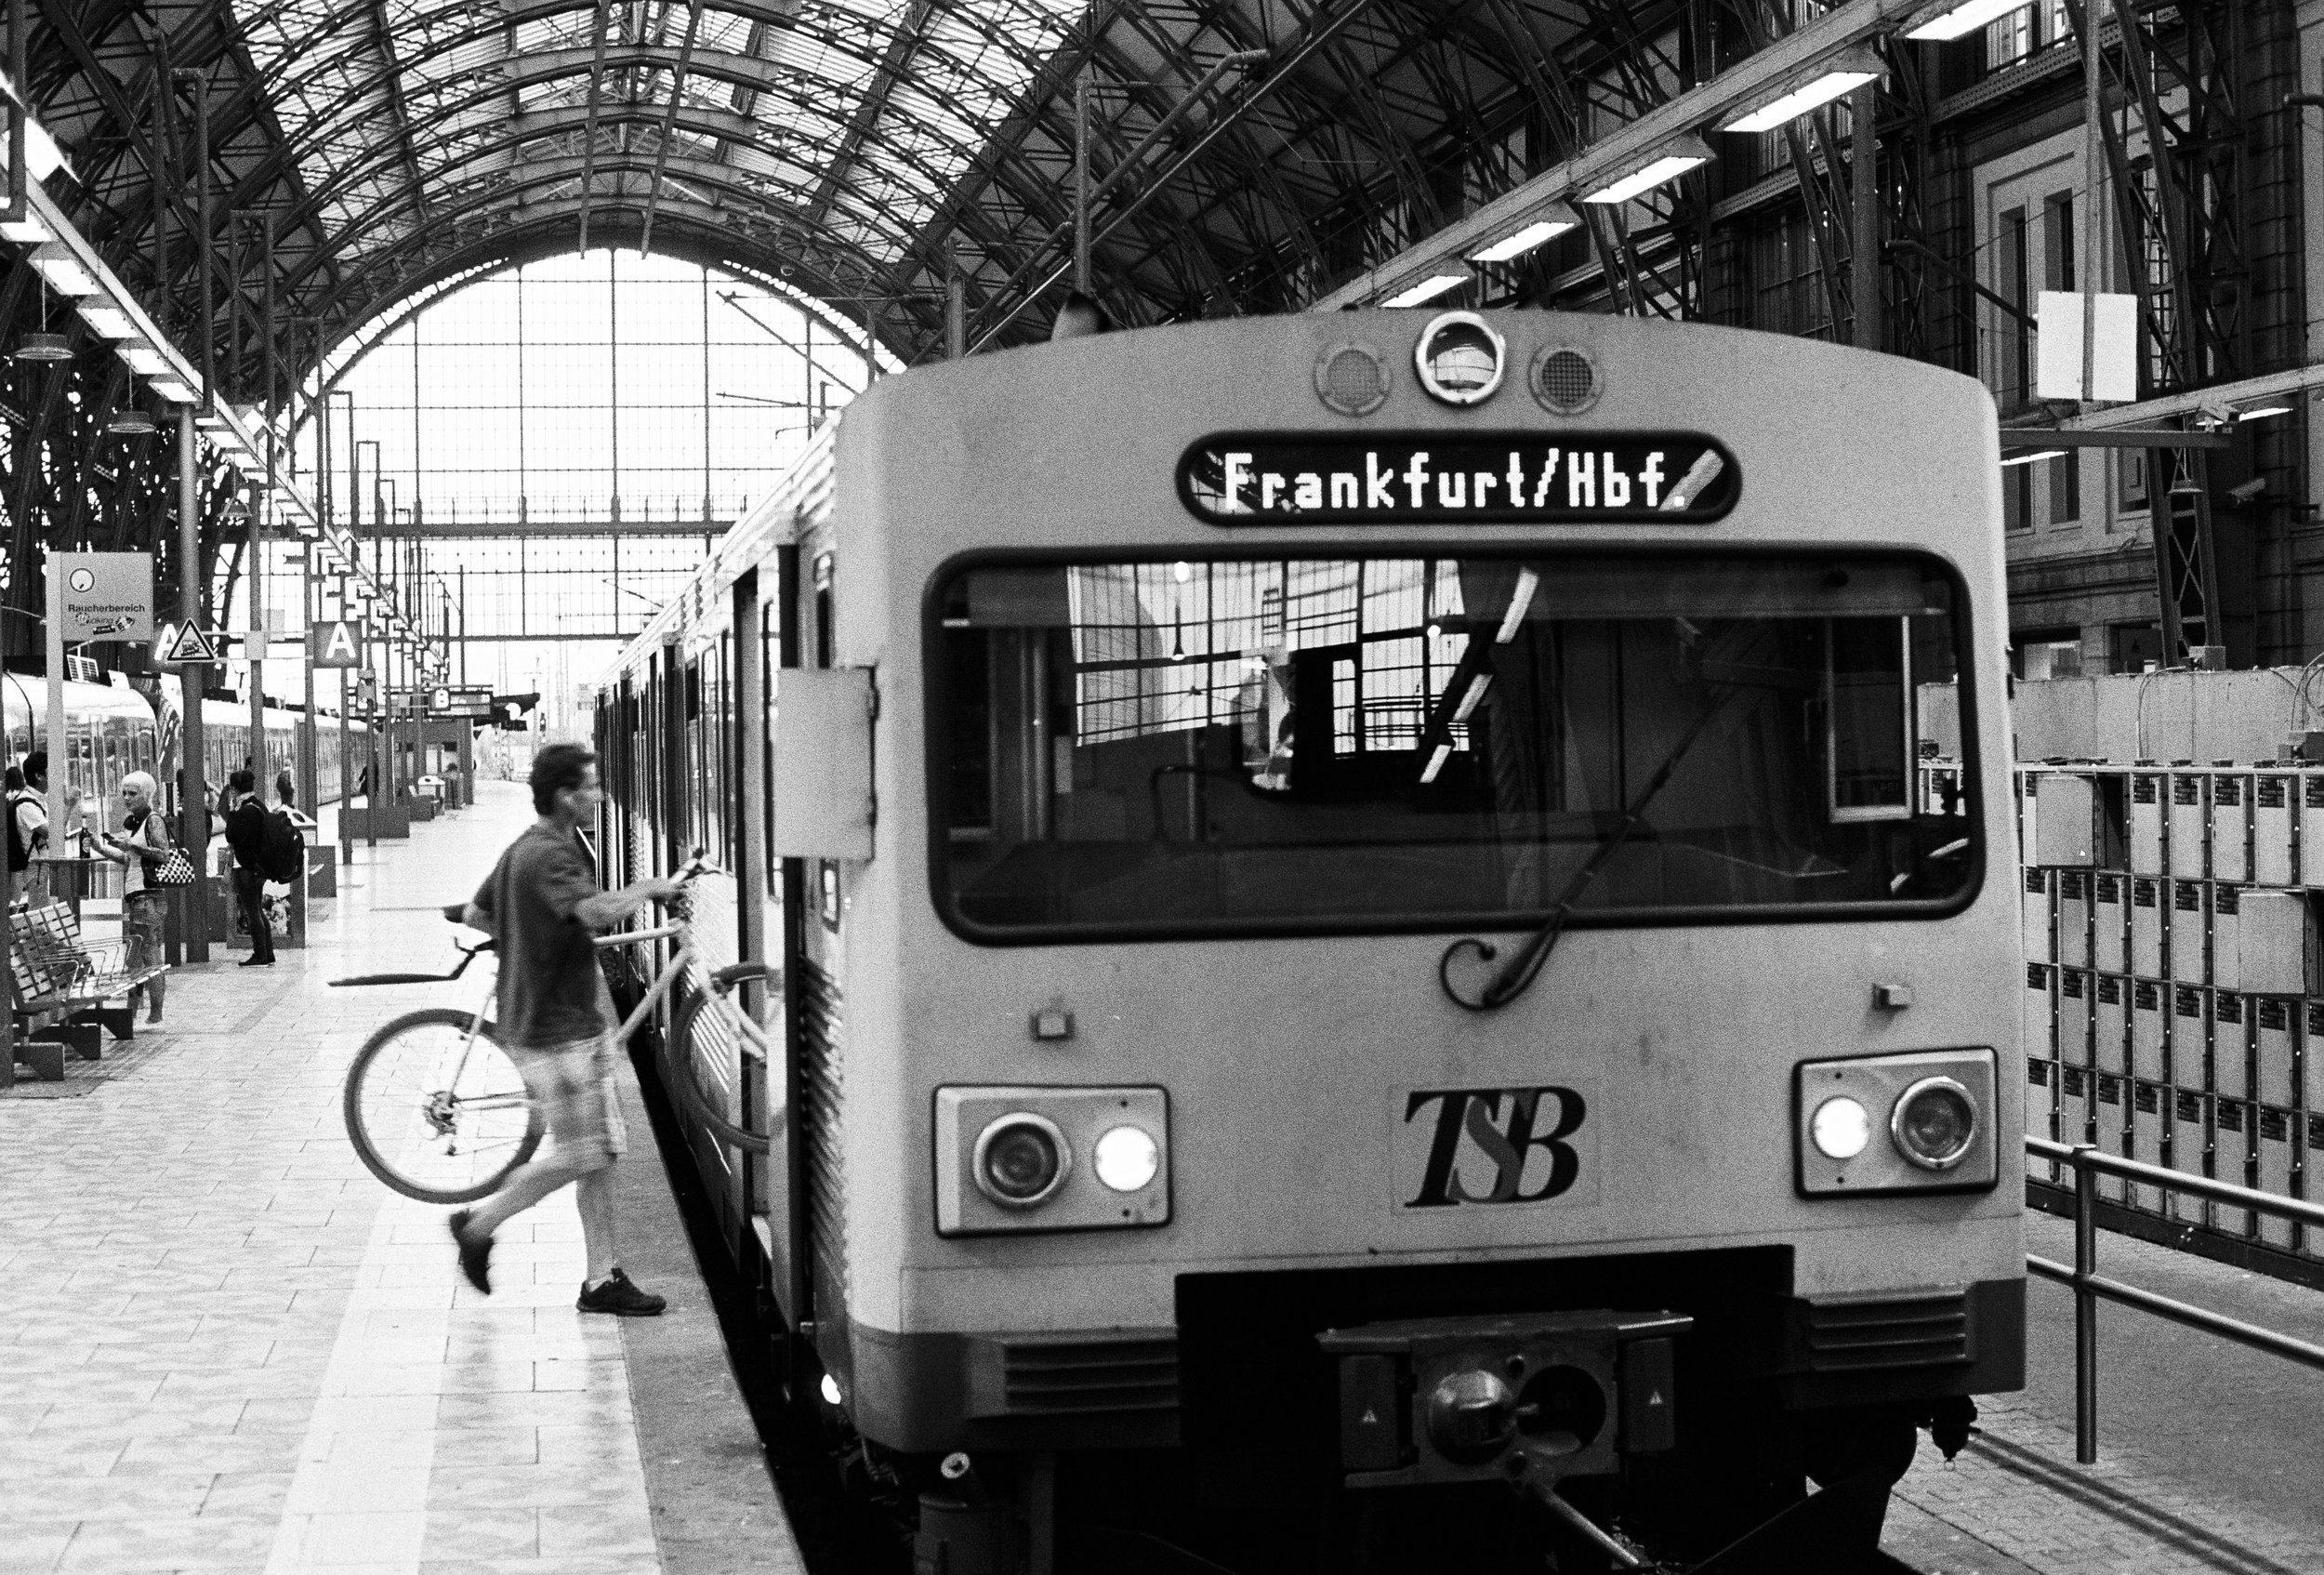 Timeless train, Frankfurt HbF